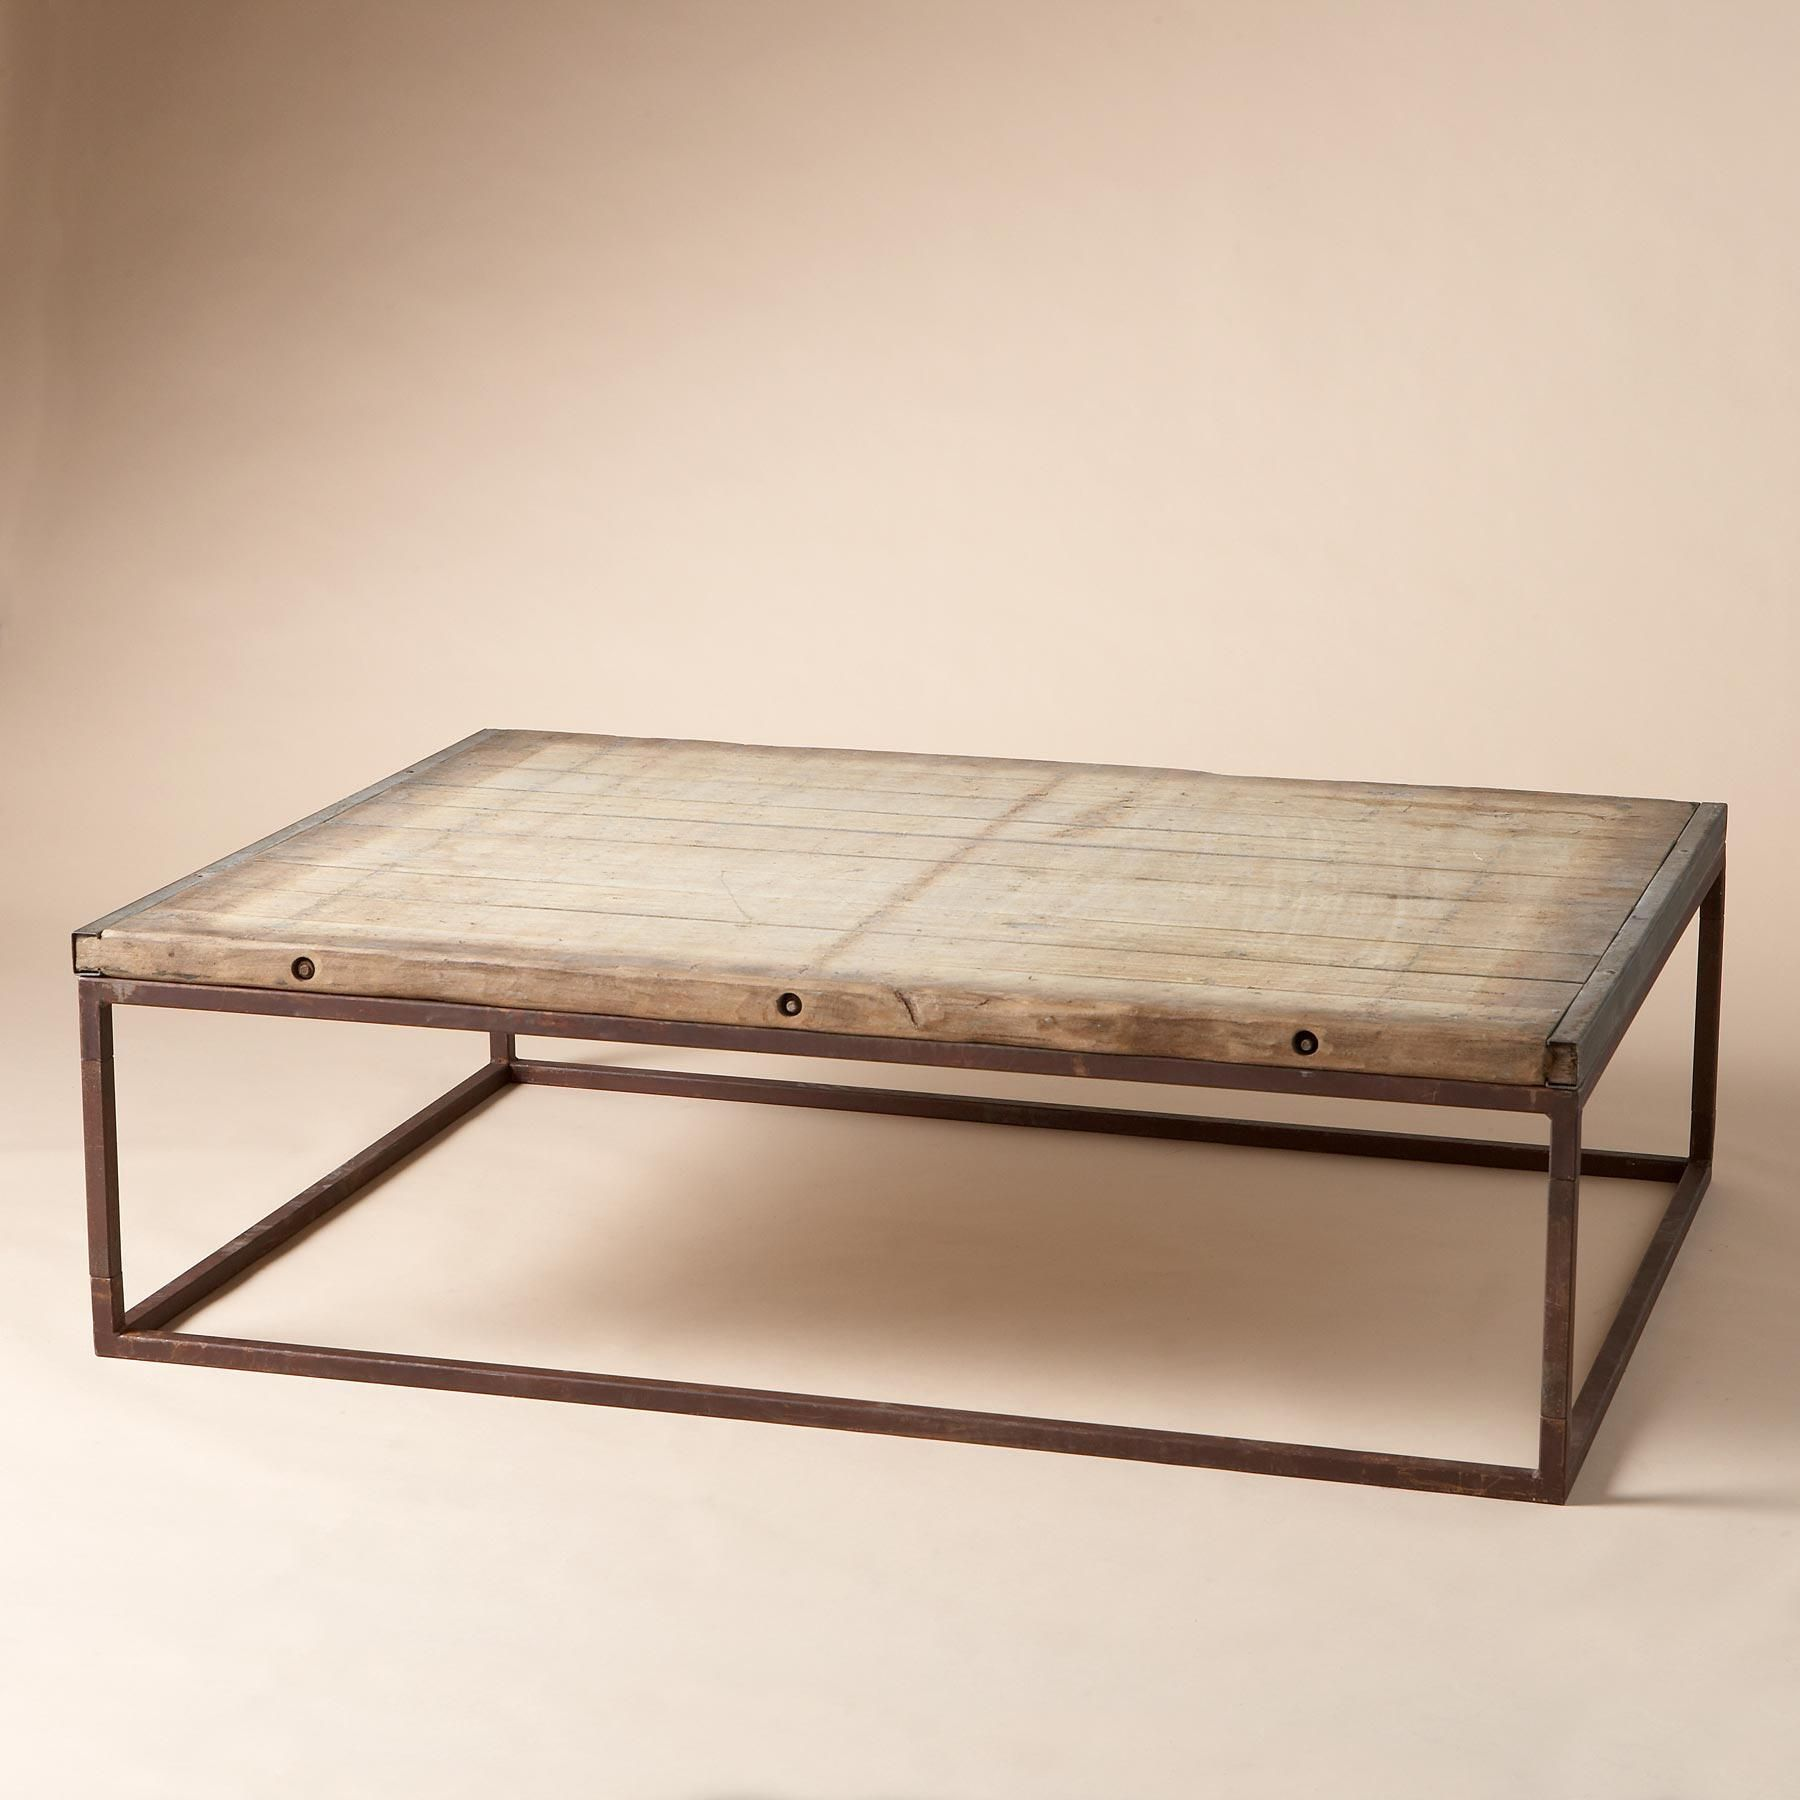 BRICKMAKERS COFFEE TABLE Put Your Feet On The Coffee Table - Brickmakers coffee table